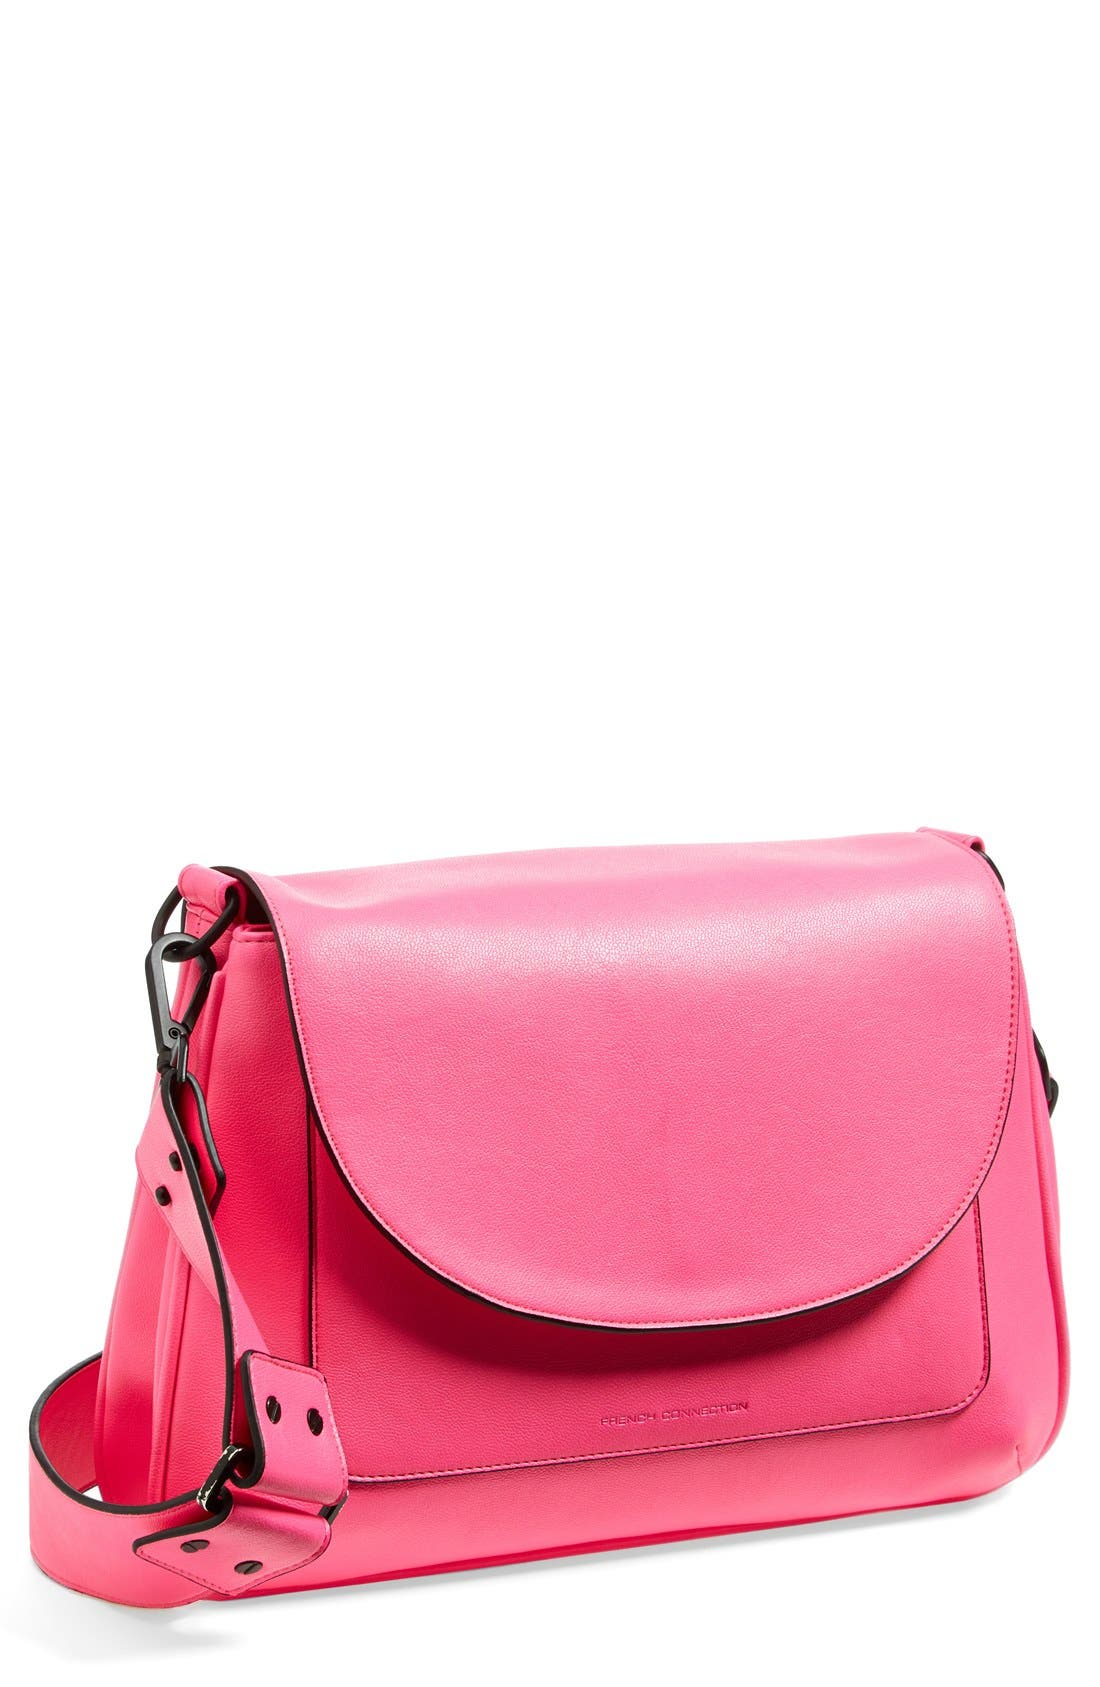 Alternate Image 1 Selected - French Connection 'Mod Squad' Faux Leather Shoulder Bag